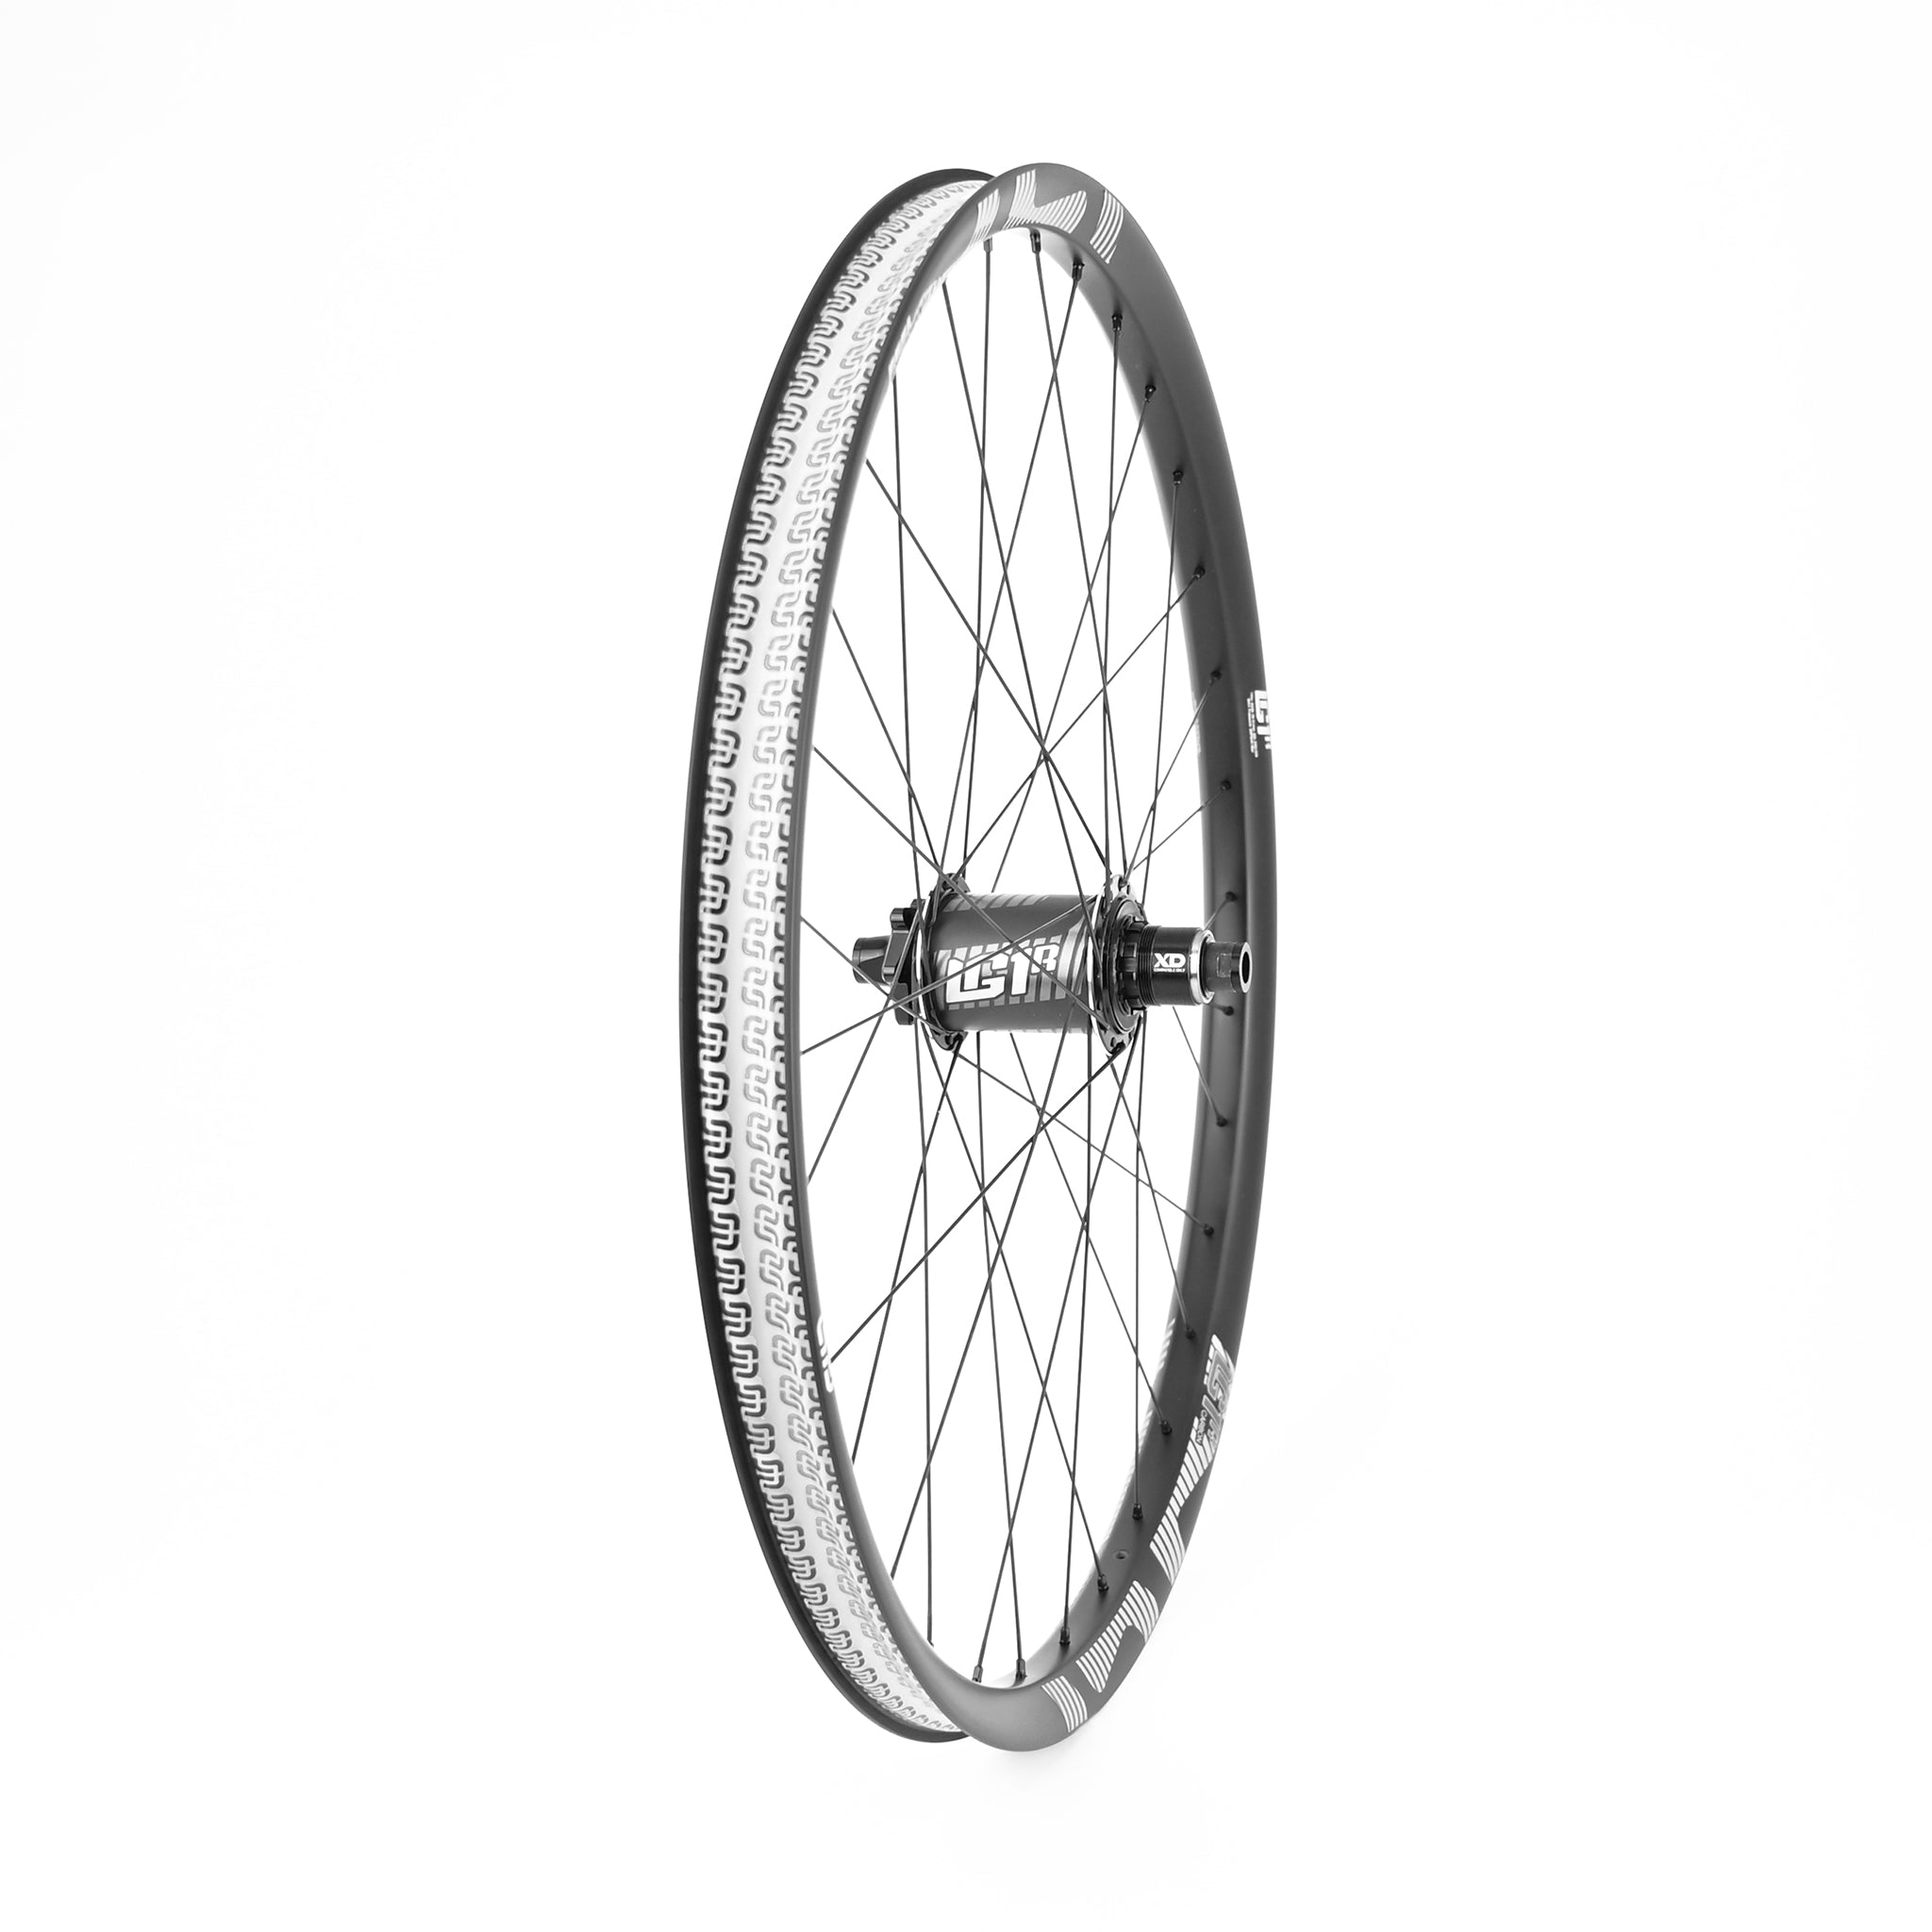 LG1 Race Carbon Downhill Wheels (2018)